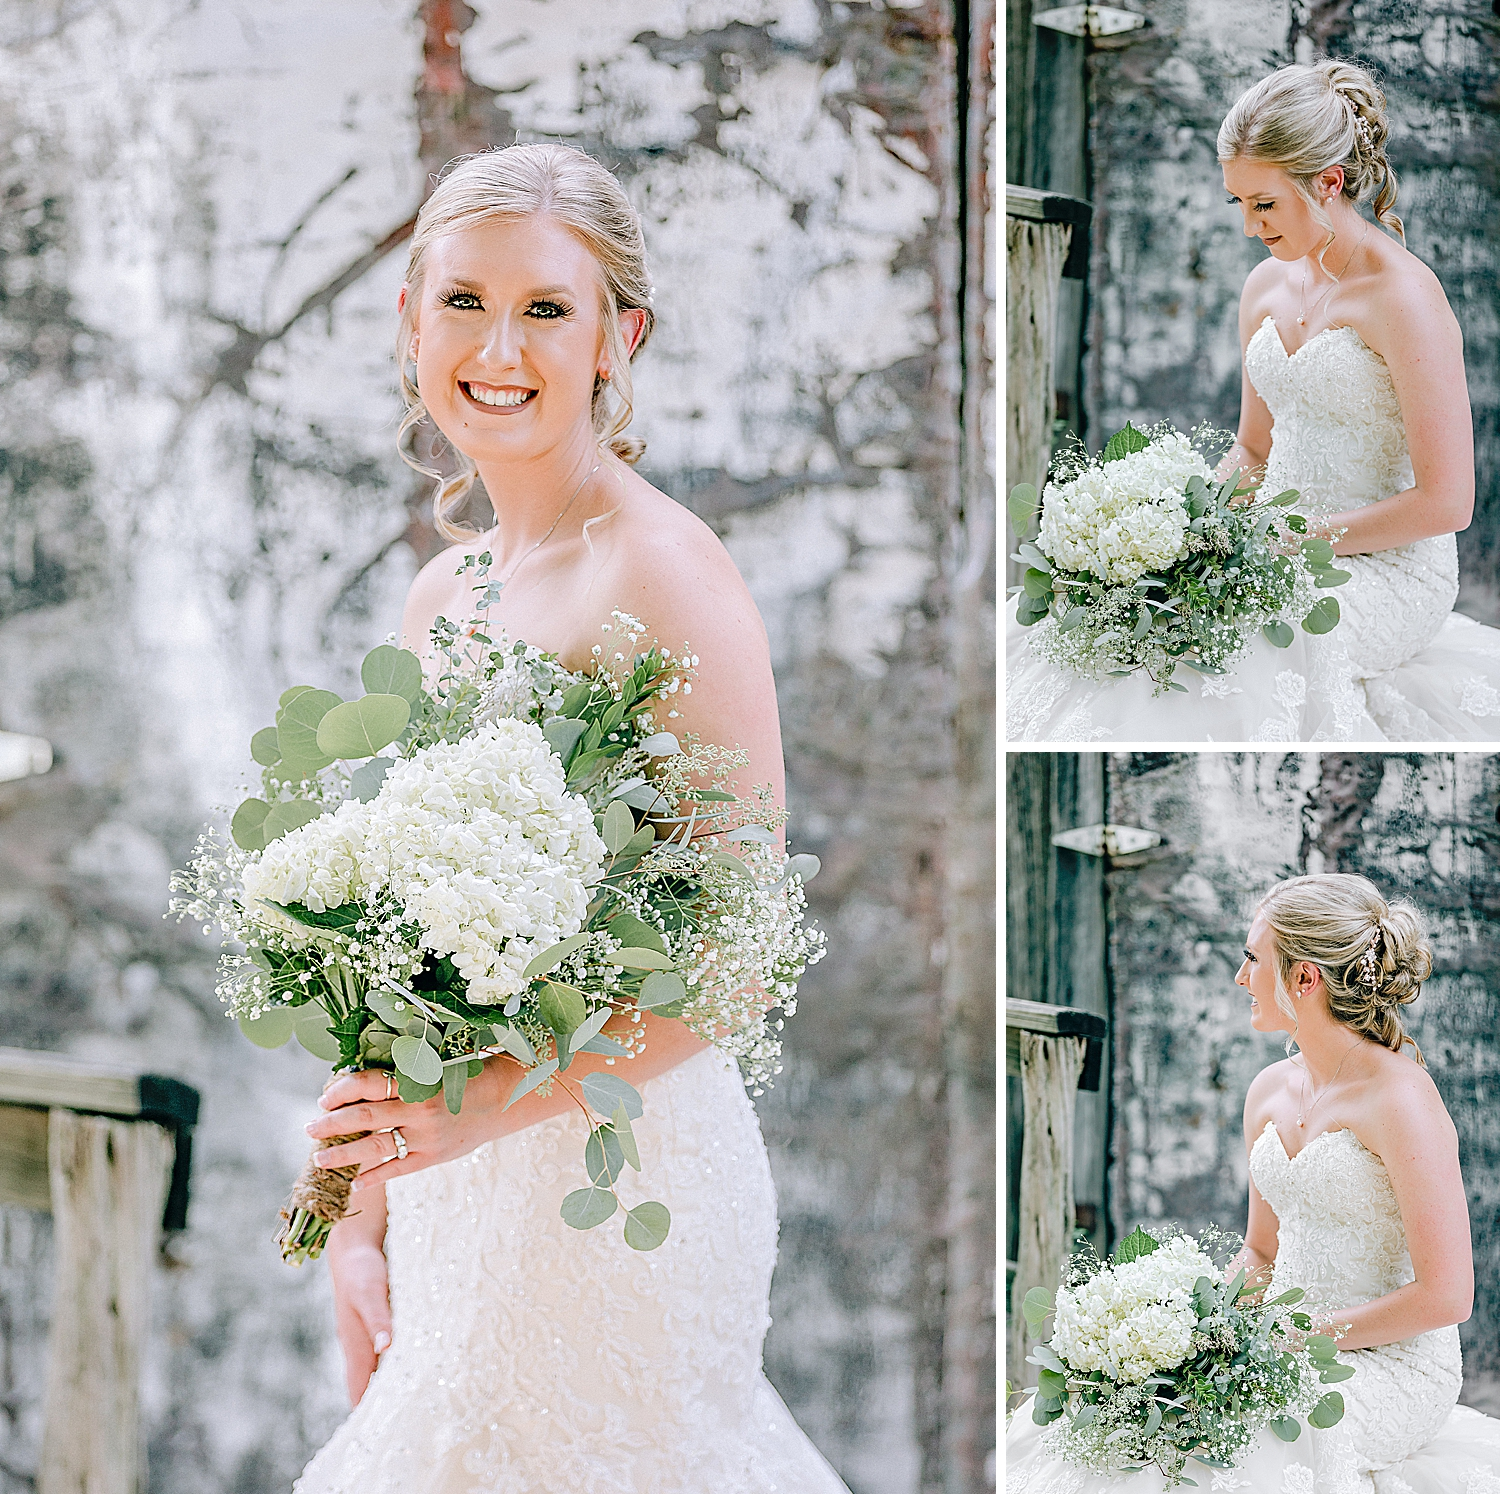 Carly-Barton-Photography-Bridal-Photos-Gruene-Rustic-New-Braunfels-Wedding-Photographer_0010.jpg